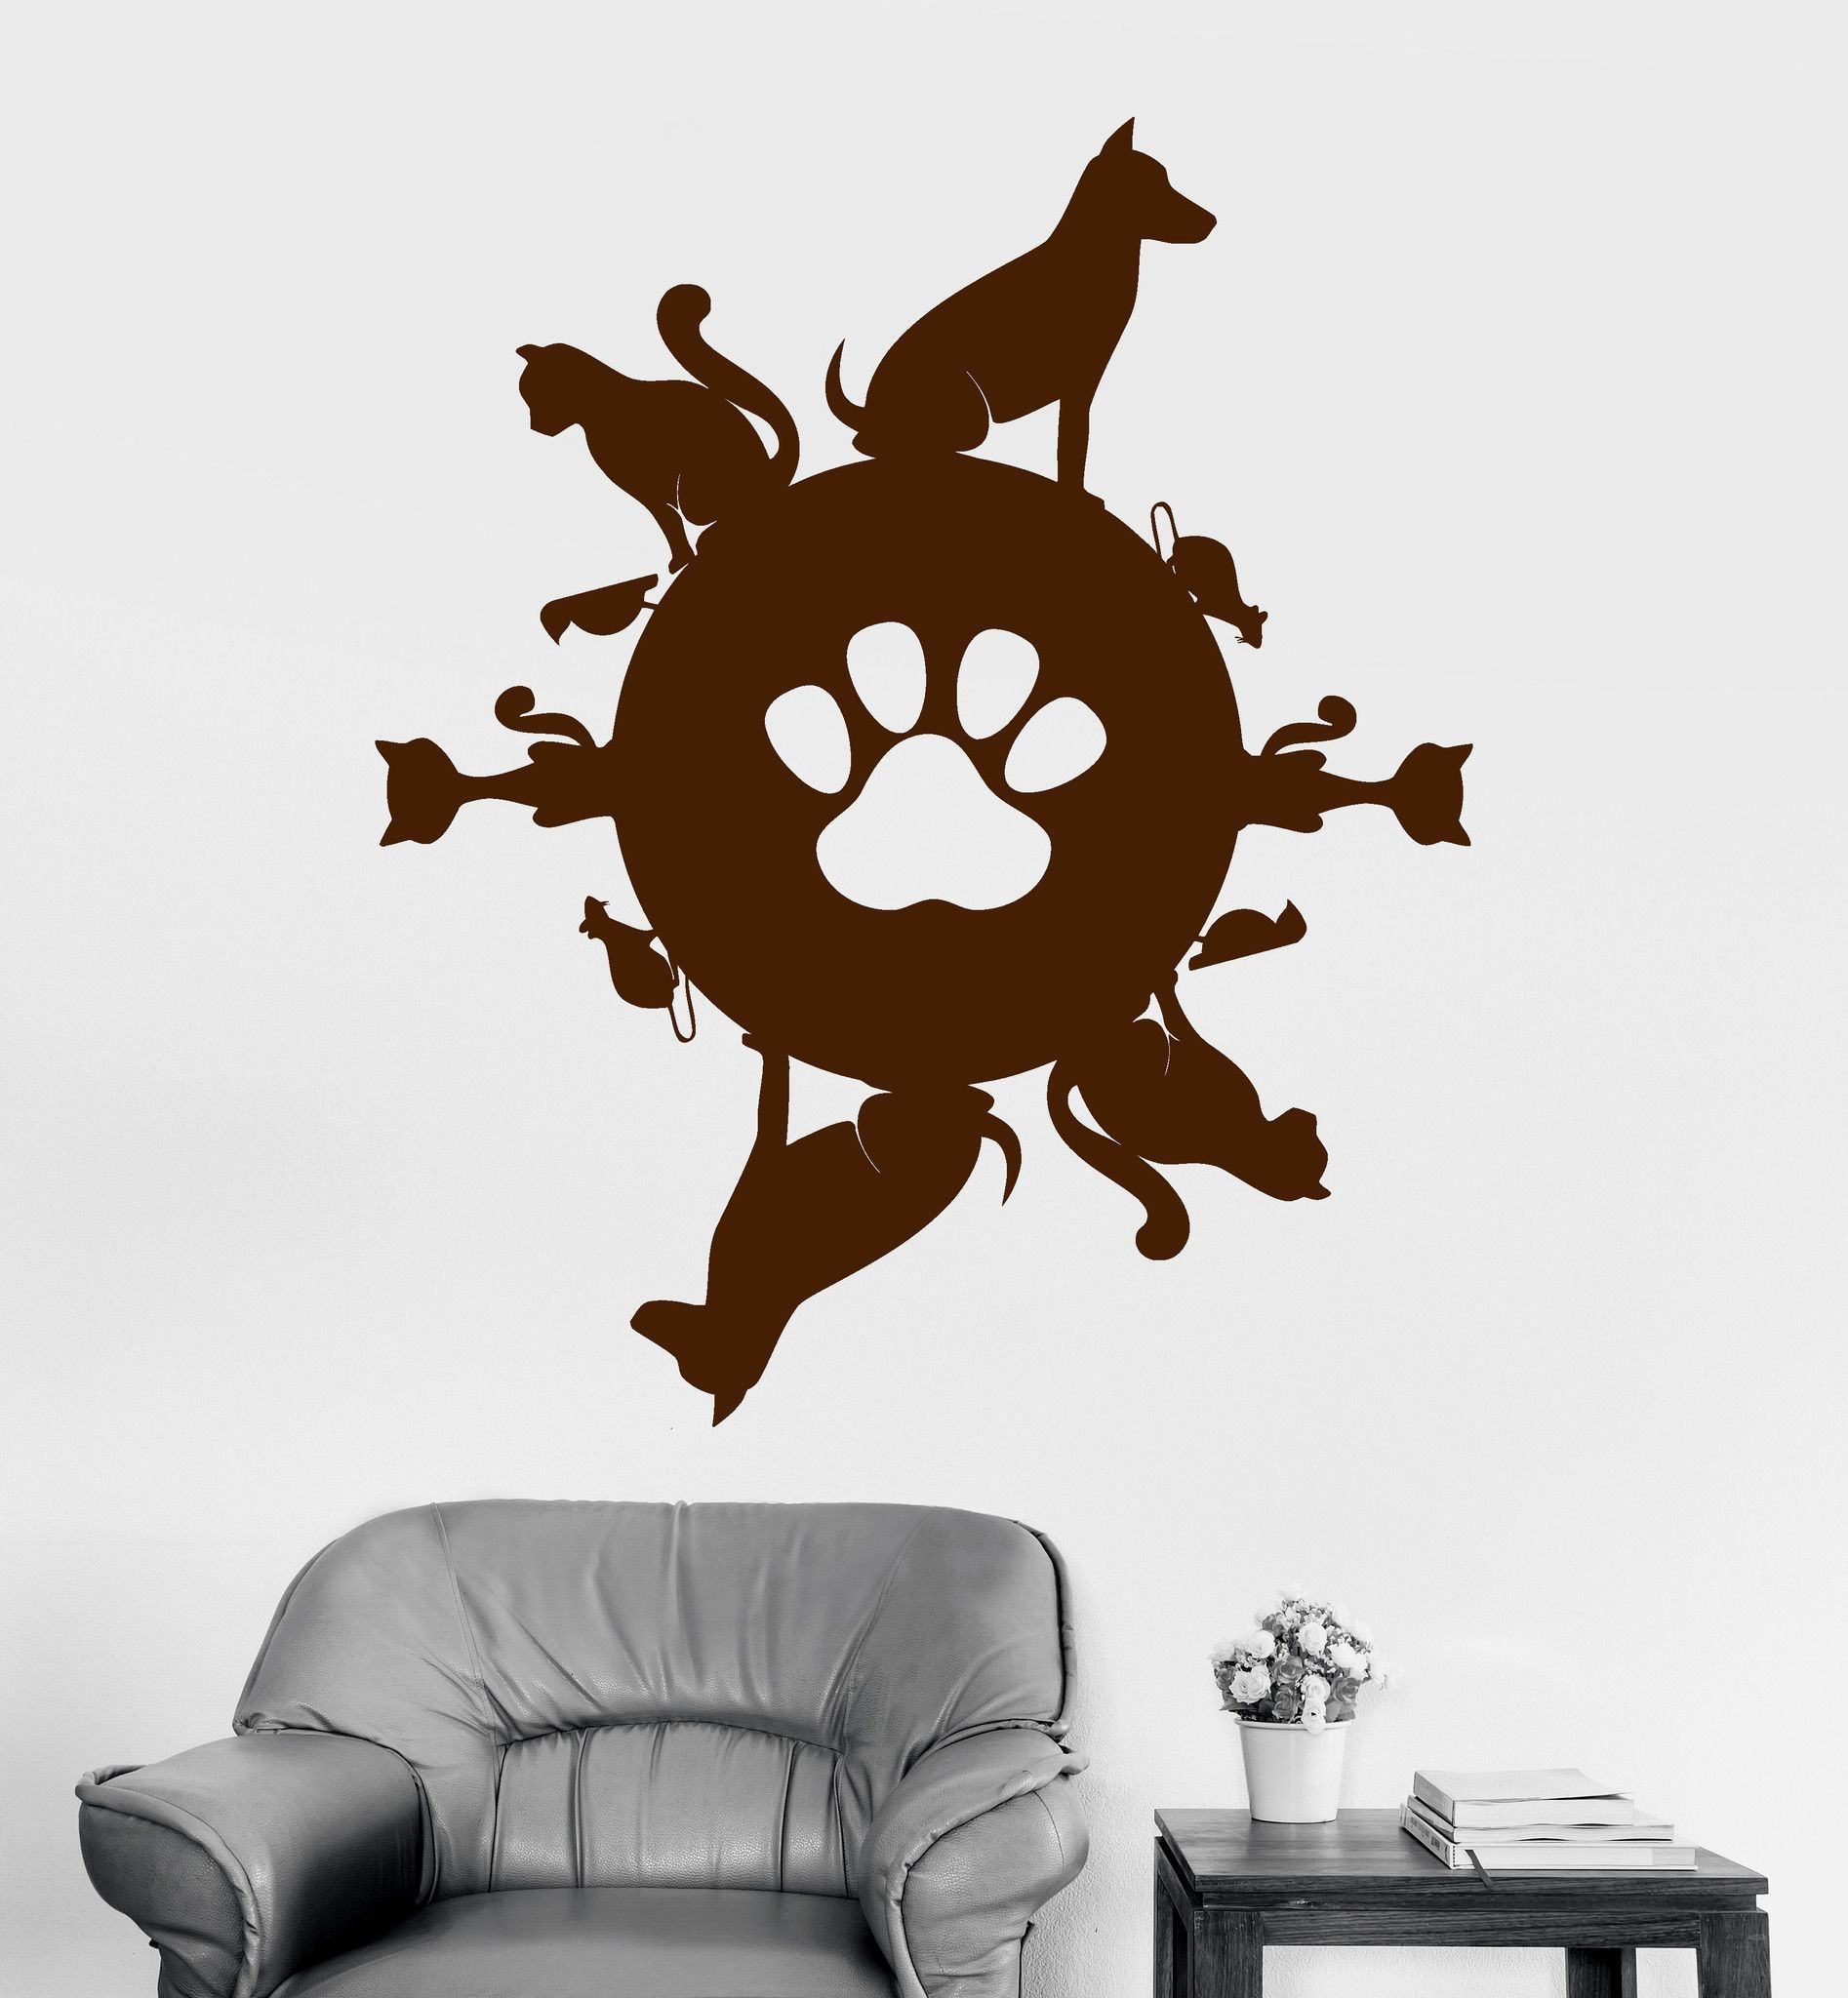 Vinyl Wall Decal Pet Planet Animal Shop Cat Dog Stickers Mural